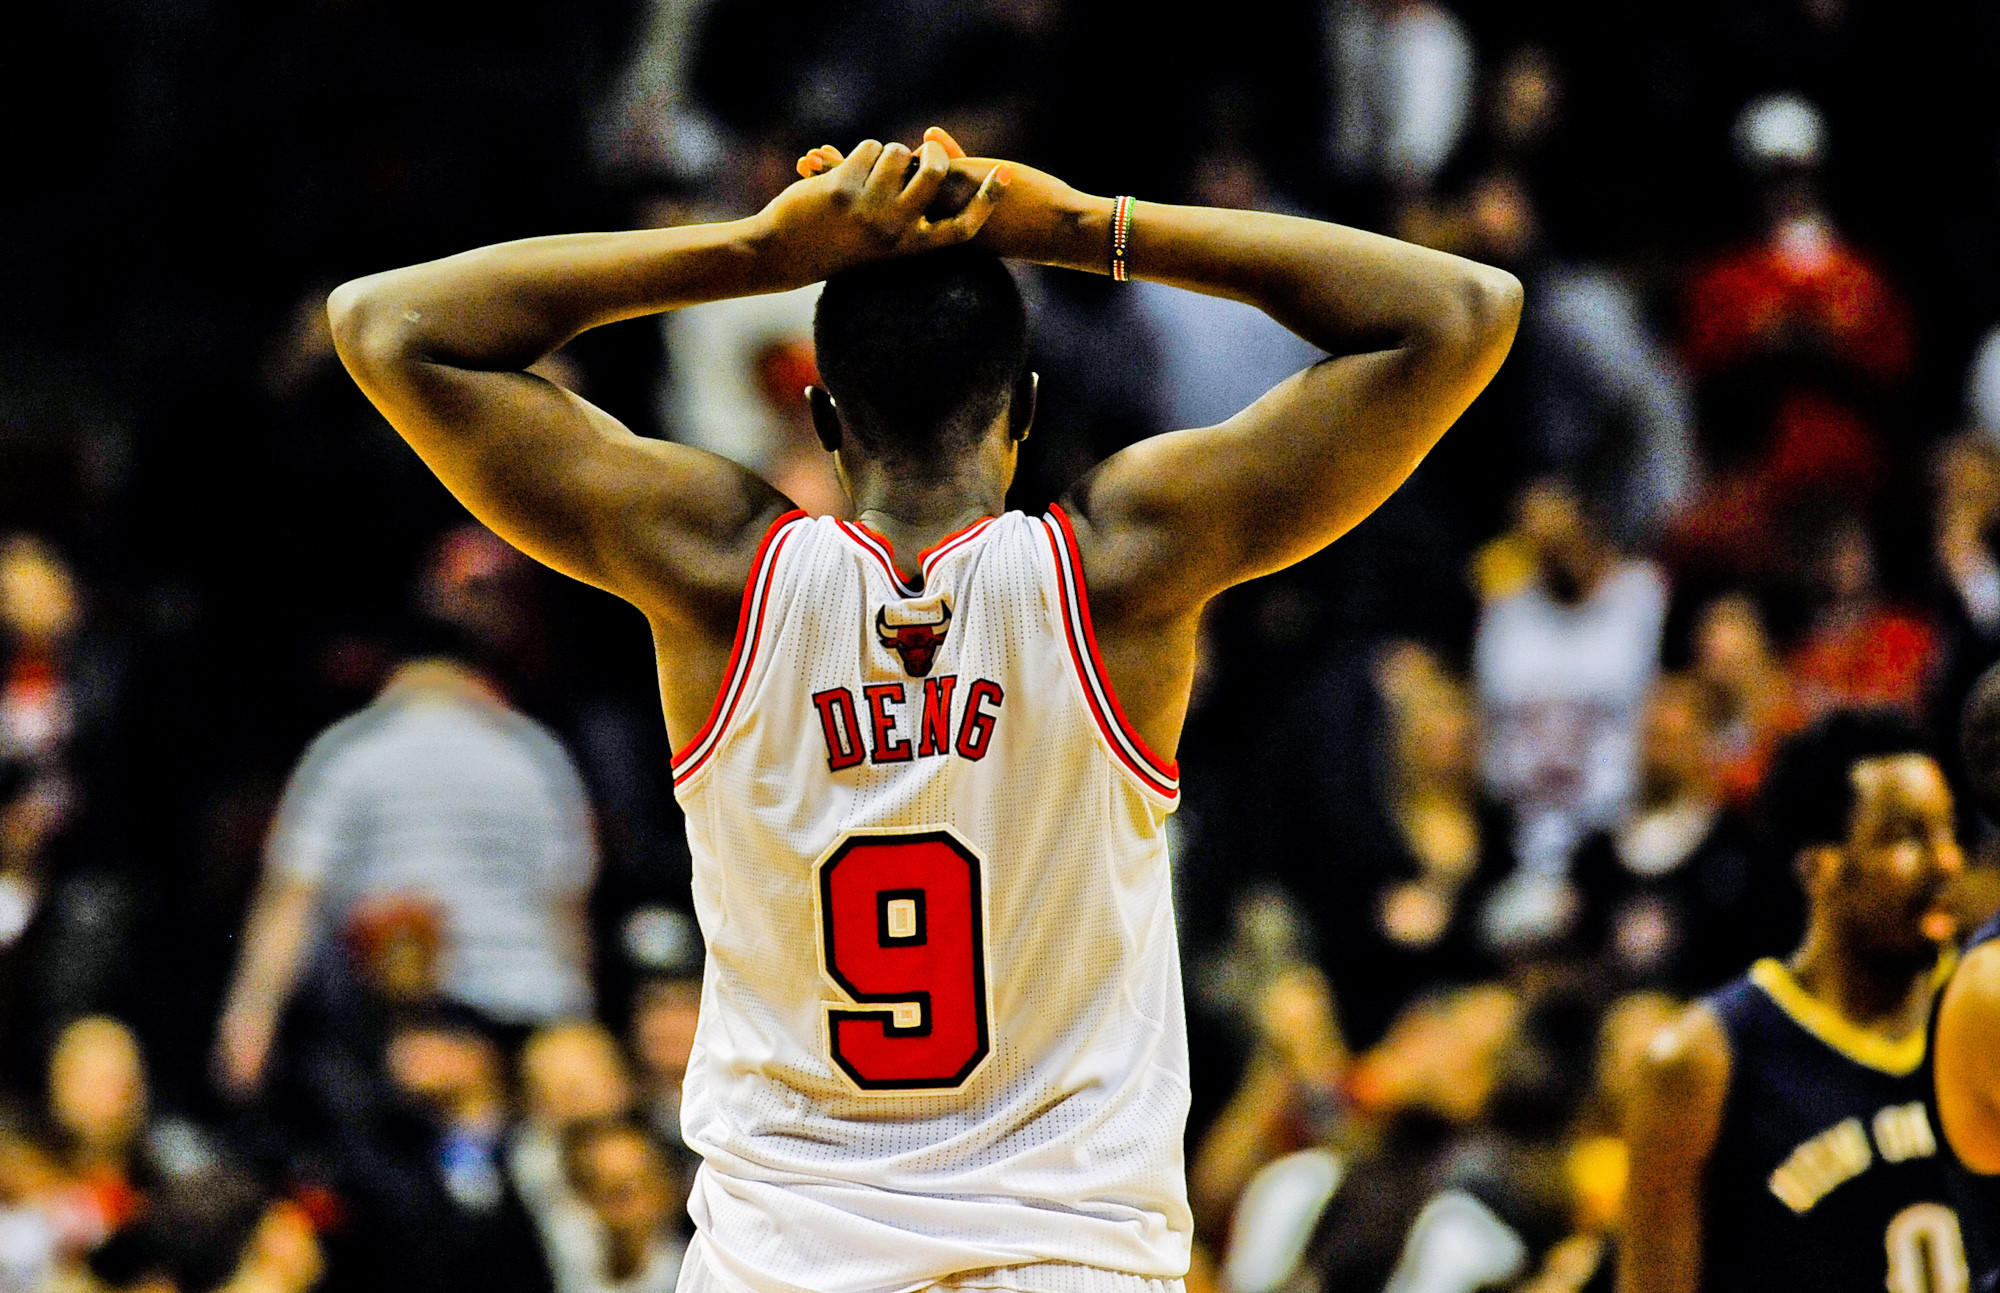 Luol Deng reacts at the end of the third overtime of the Bulls' game against the Pelicans.